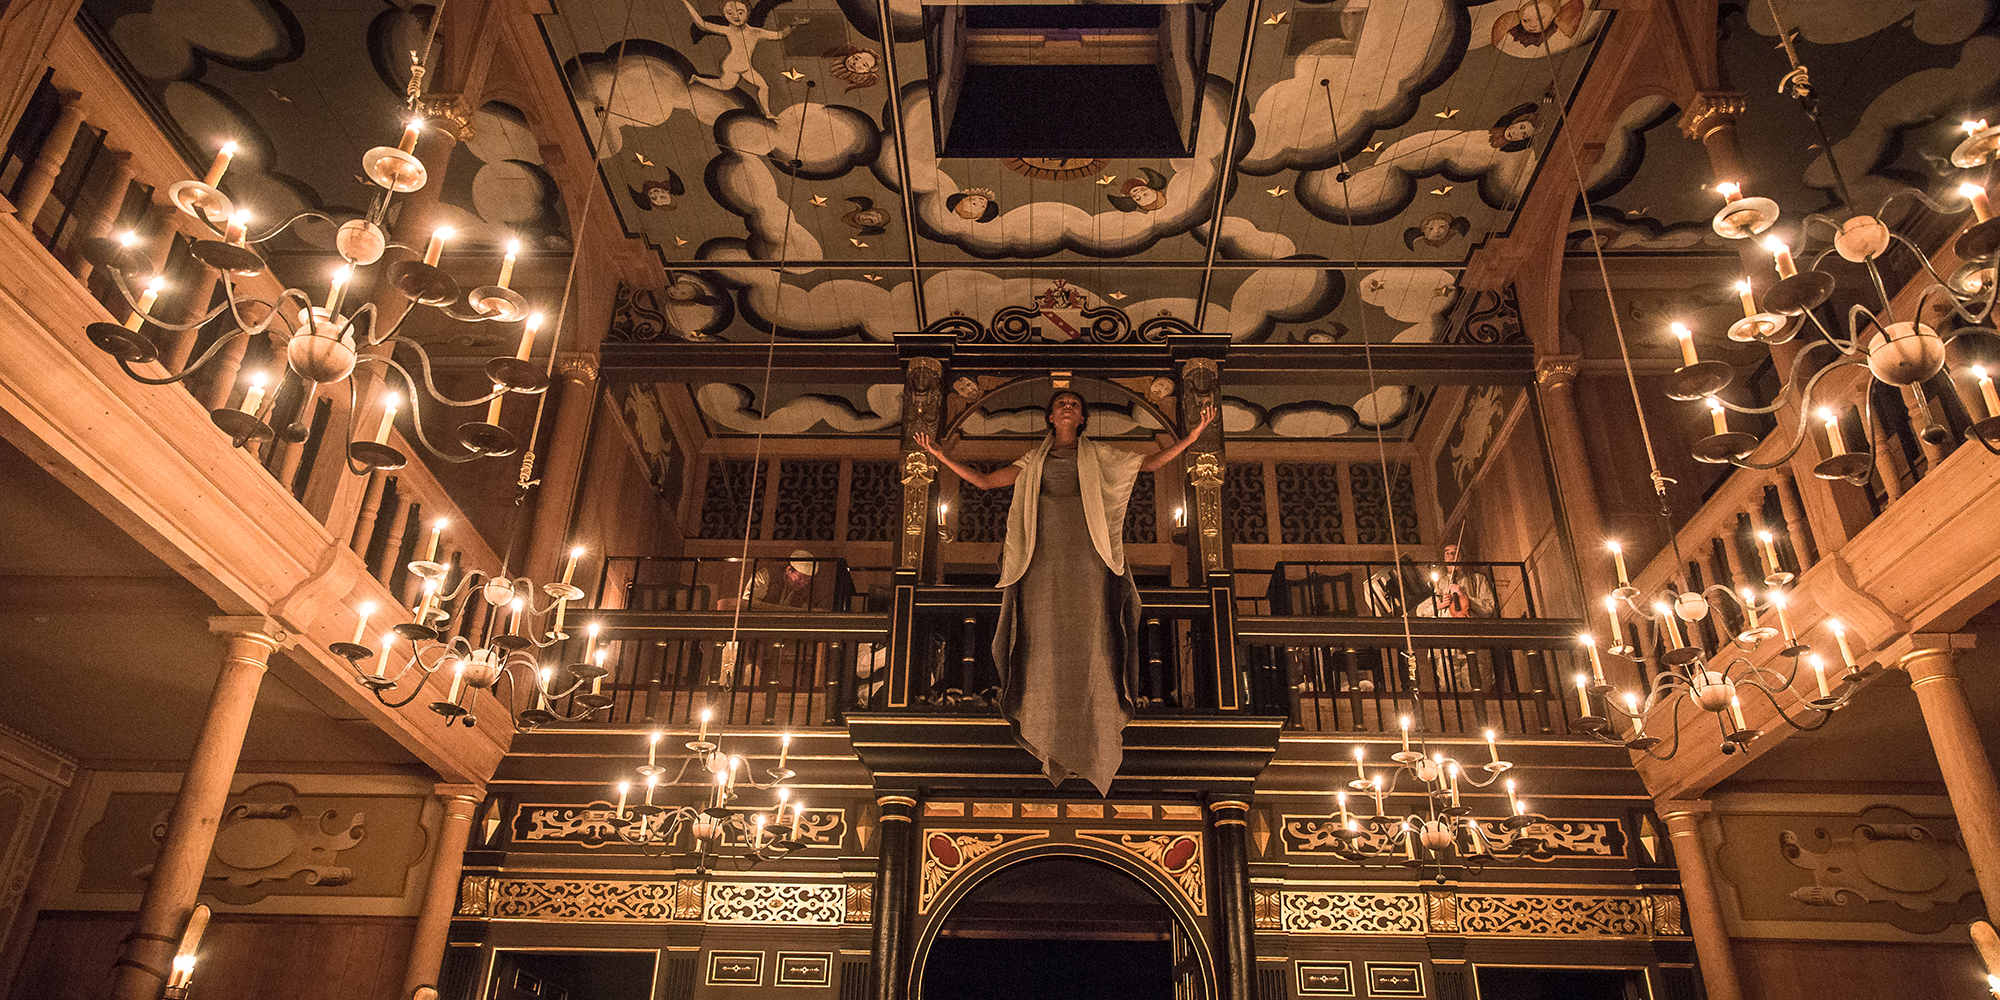 A woman descends from a trapdoor in the painted heavens of the Sam Wanamaker Playhouse, which is lit by candlelight